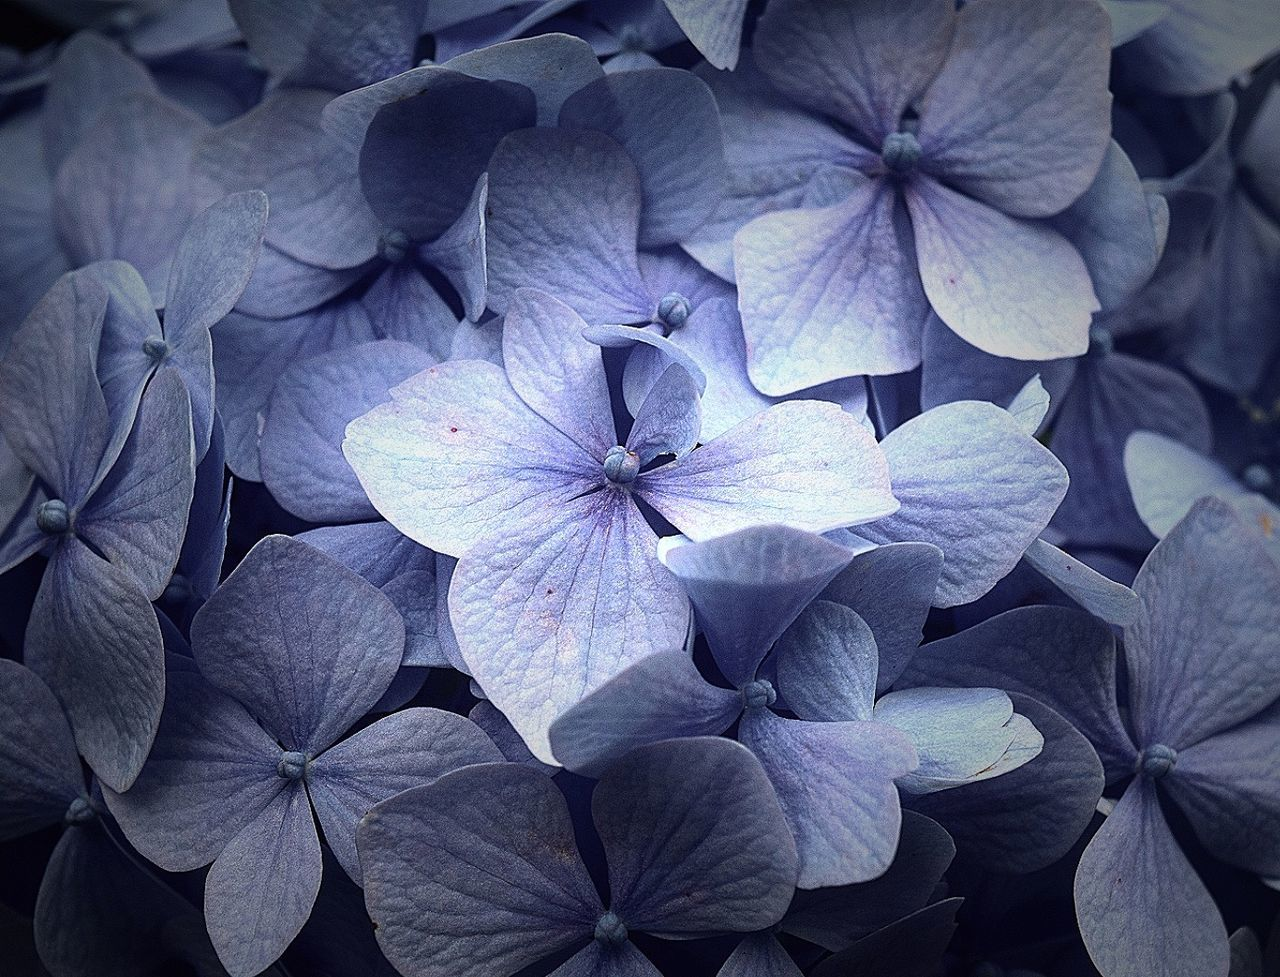 flower, beauty in nature, petal, plant, growth, purple, close-up, flower head, no people, day, nature, freshness, outdoors, fragility, petunia, blooming, periwinkle